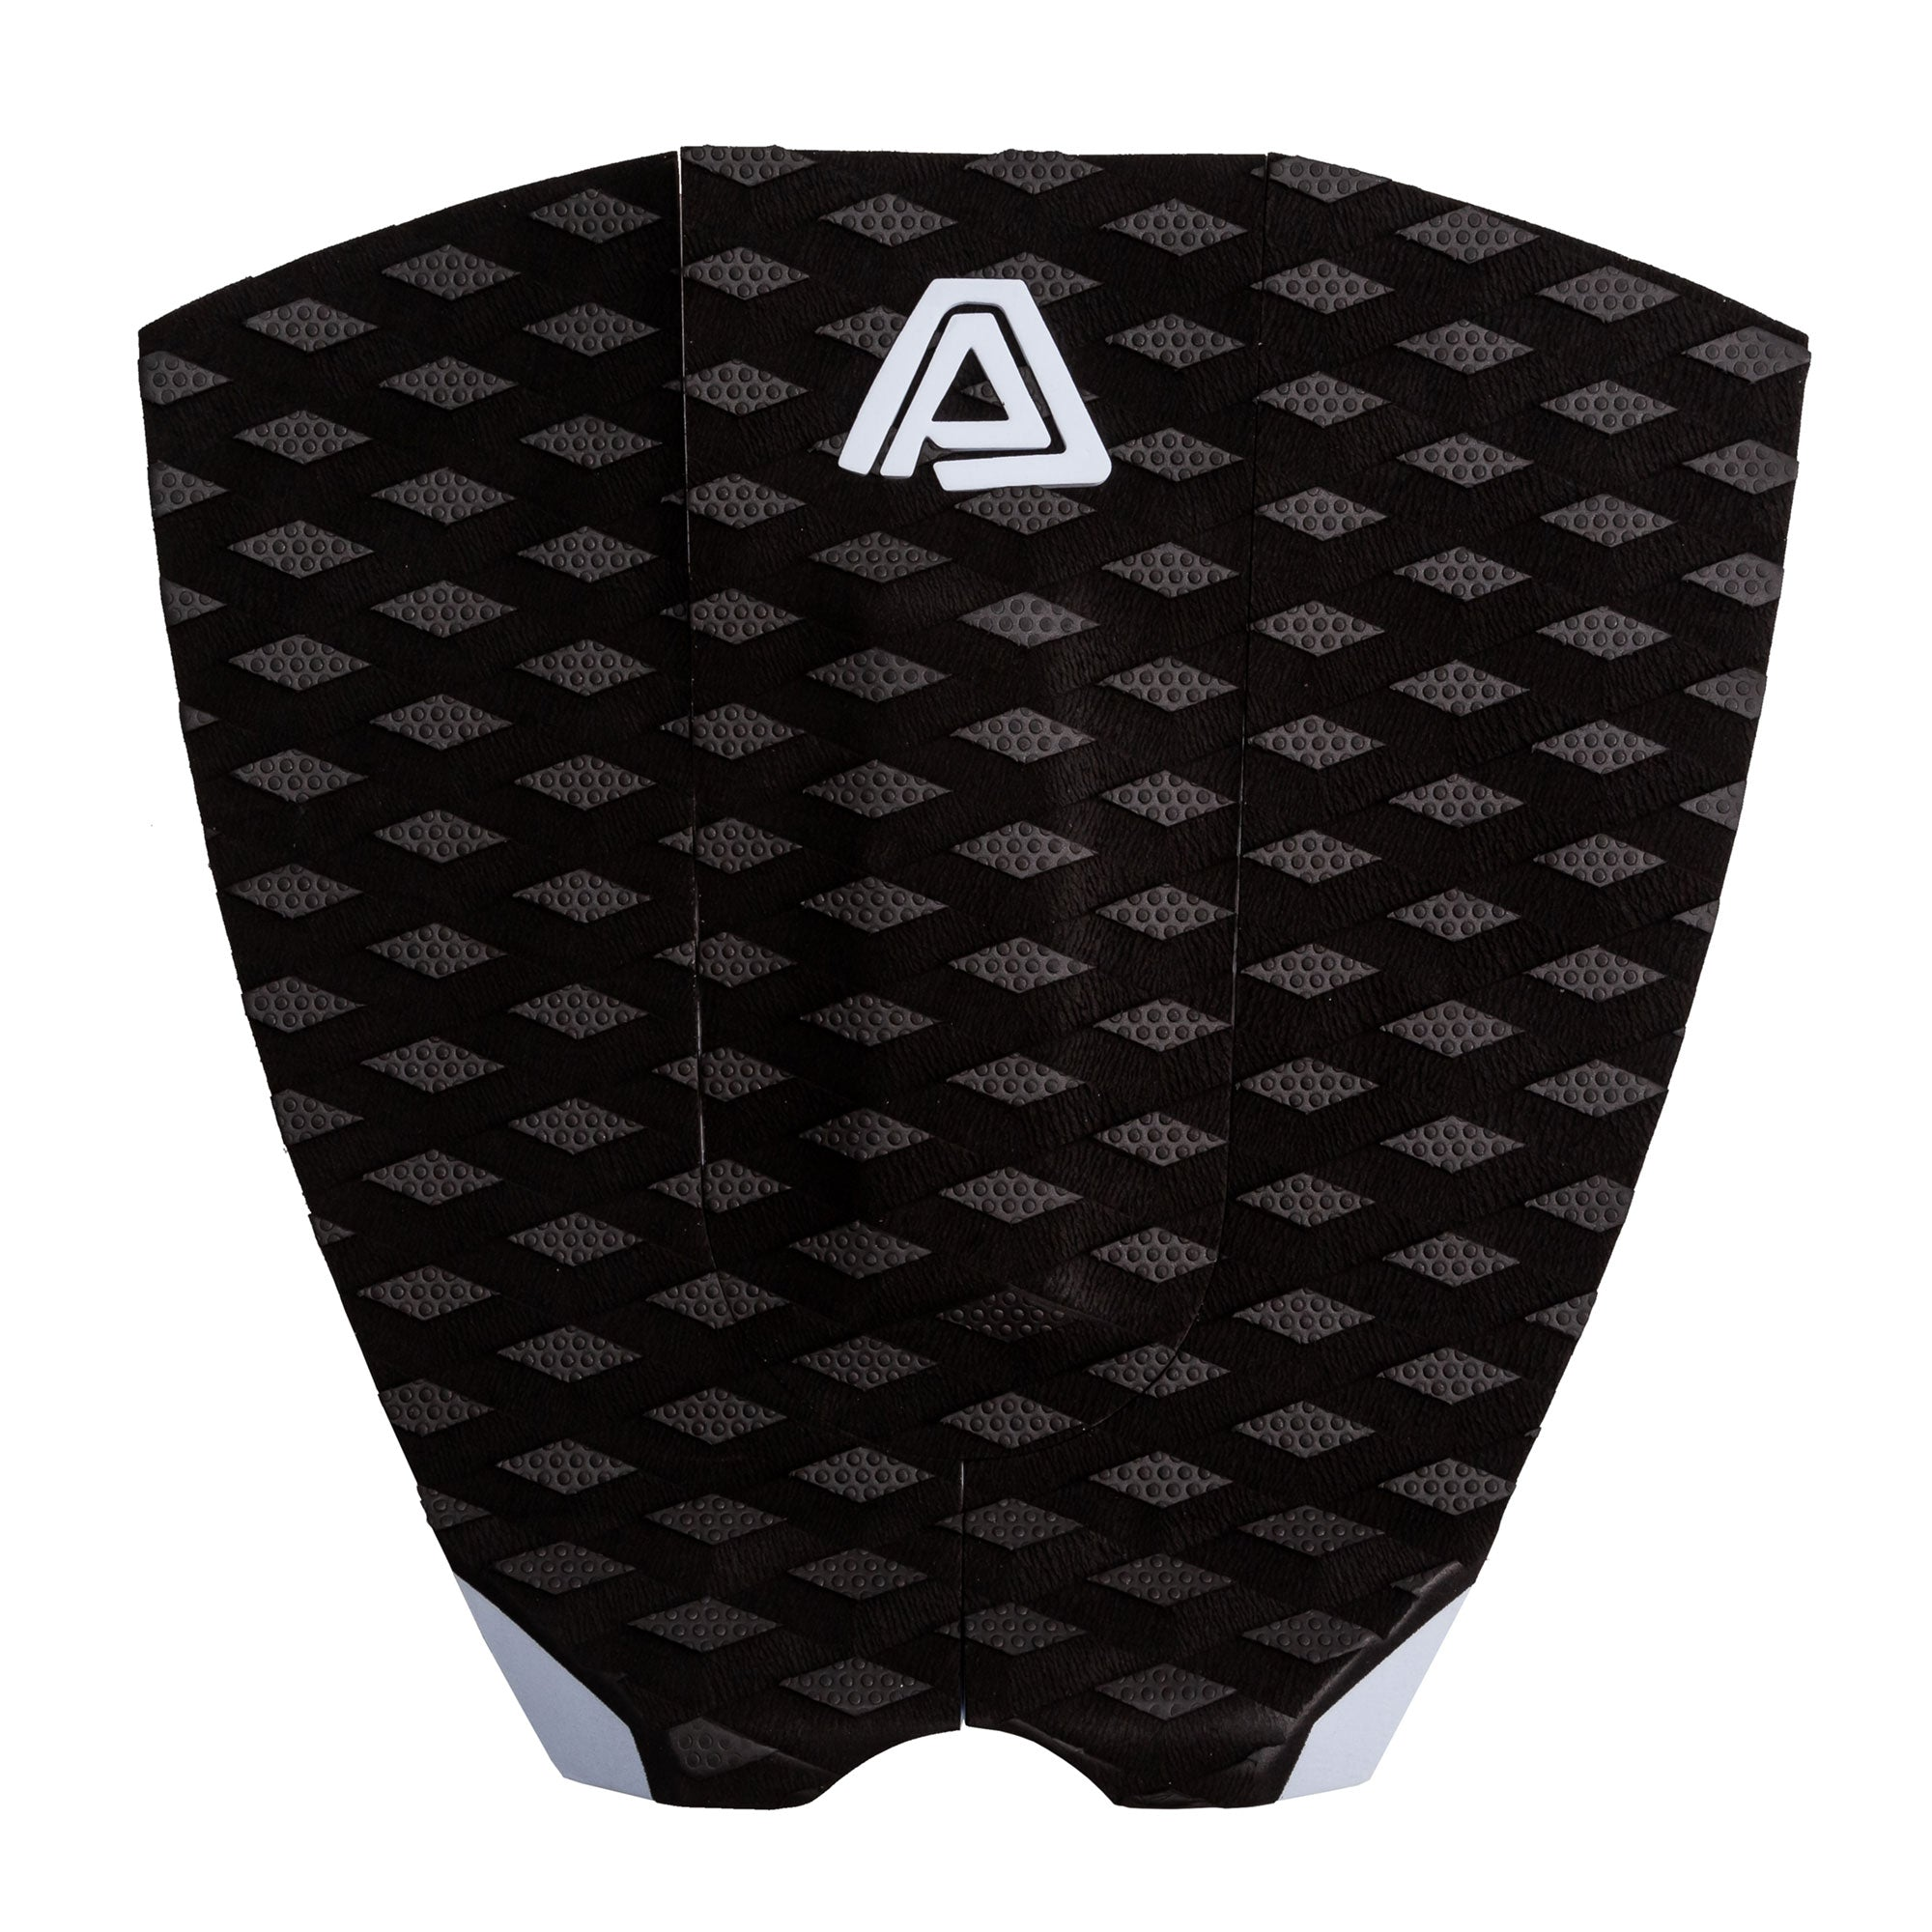 Arcade Surfboard Traction Pad 3 Piece - Santa Cruz Surf Shop™